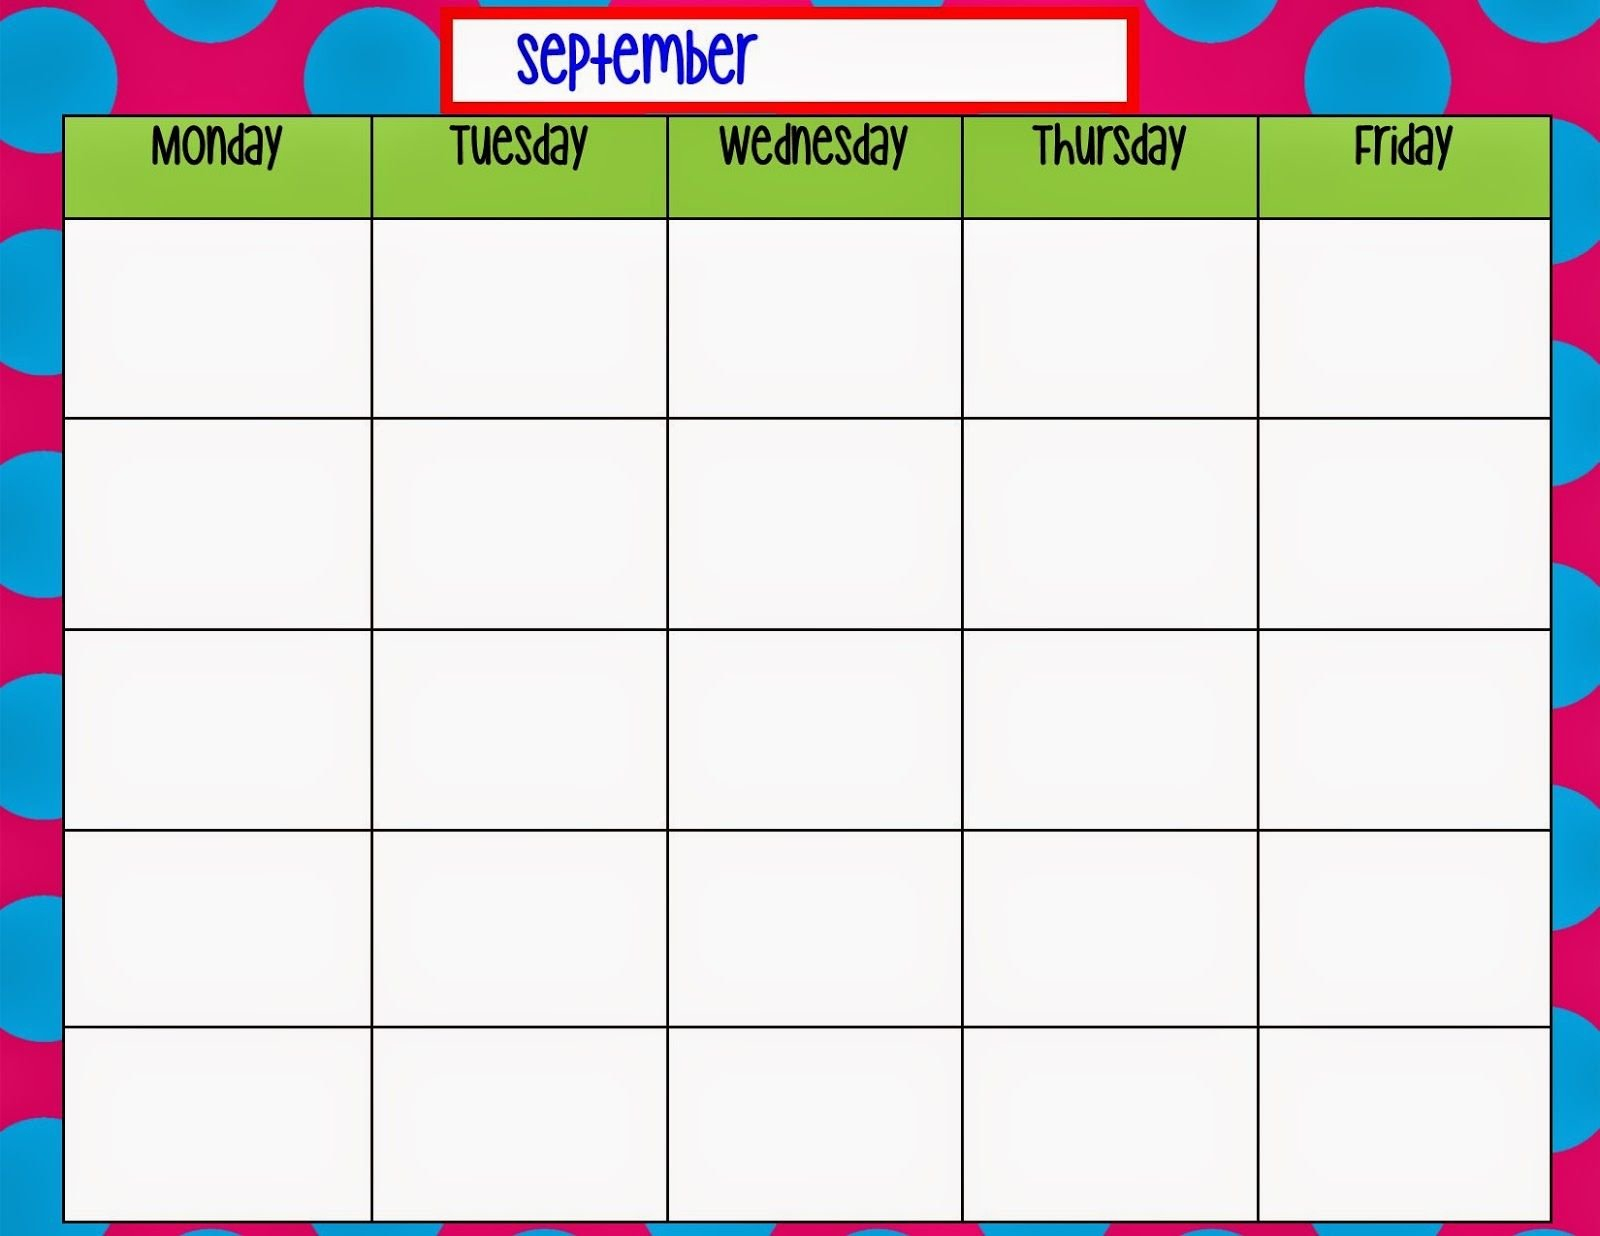 Monday Through Friday Calendar Template (With Images Monday - Friday Schedule Blank Template